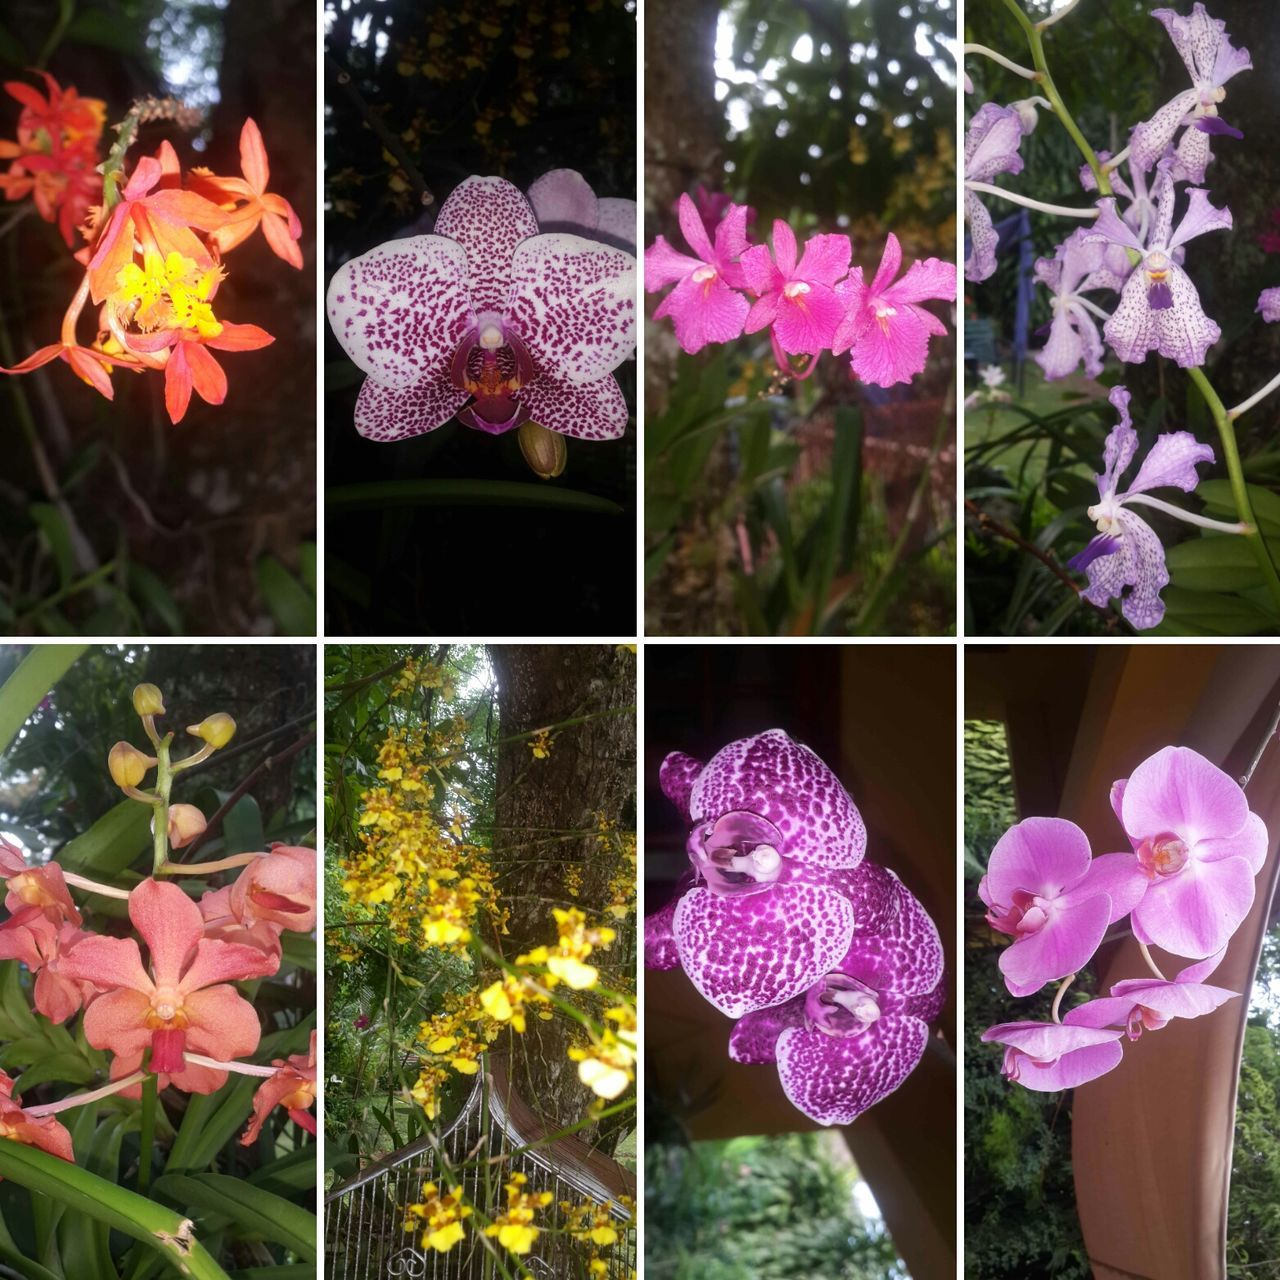 8 types of Orchids blossoming in hime garden Nofilter Outdoors Orchids Orchid Blossoms OrchidLover Varitation Beauty In Nature Naturelovers Allnatureshots